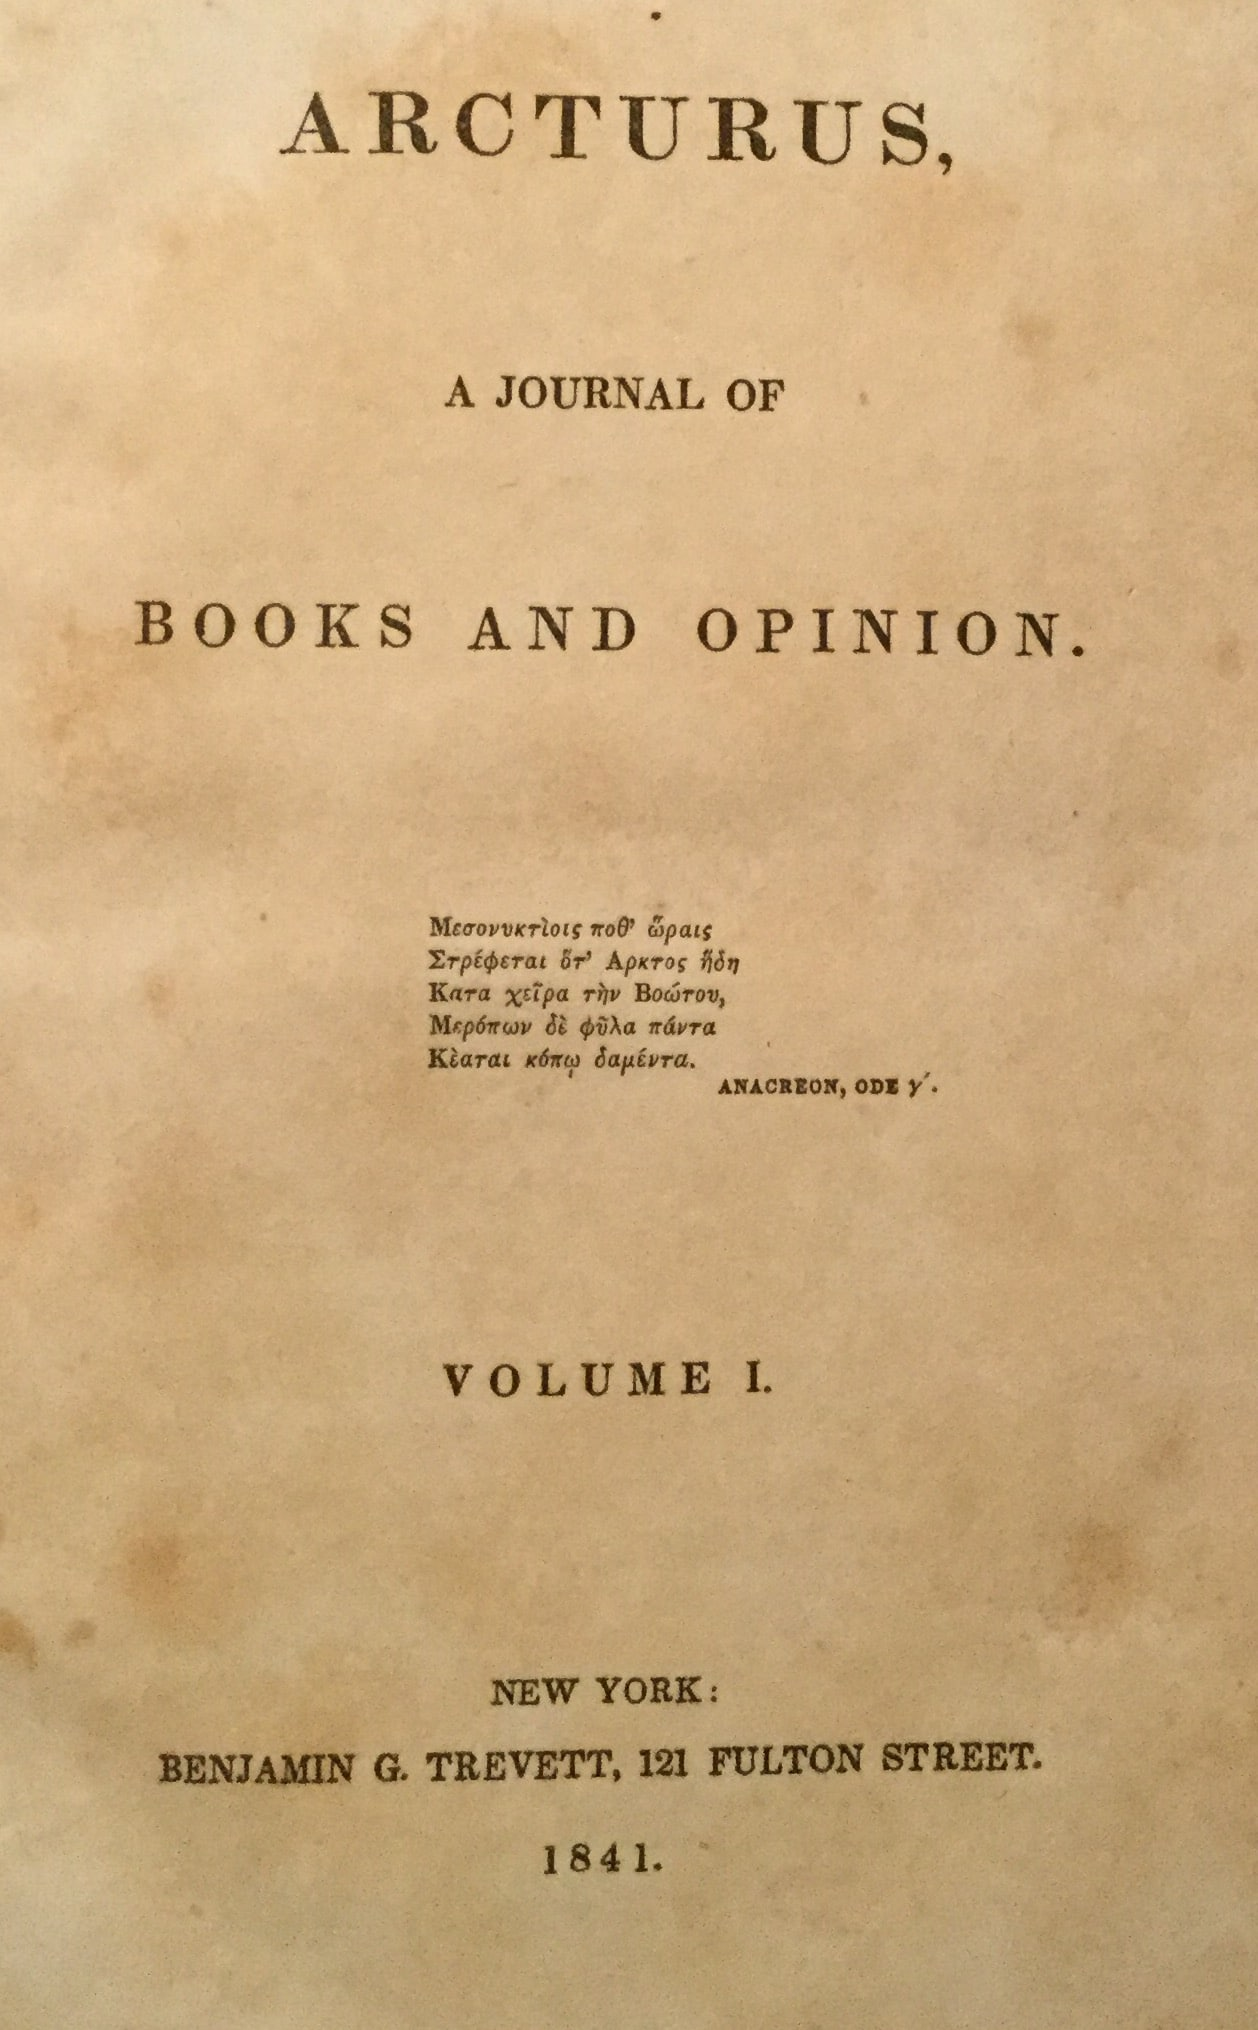 Arcturus, A Journal of Books and Opinion